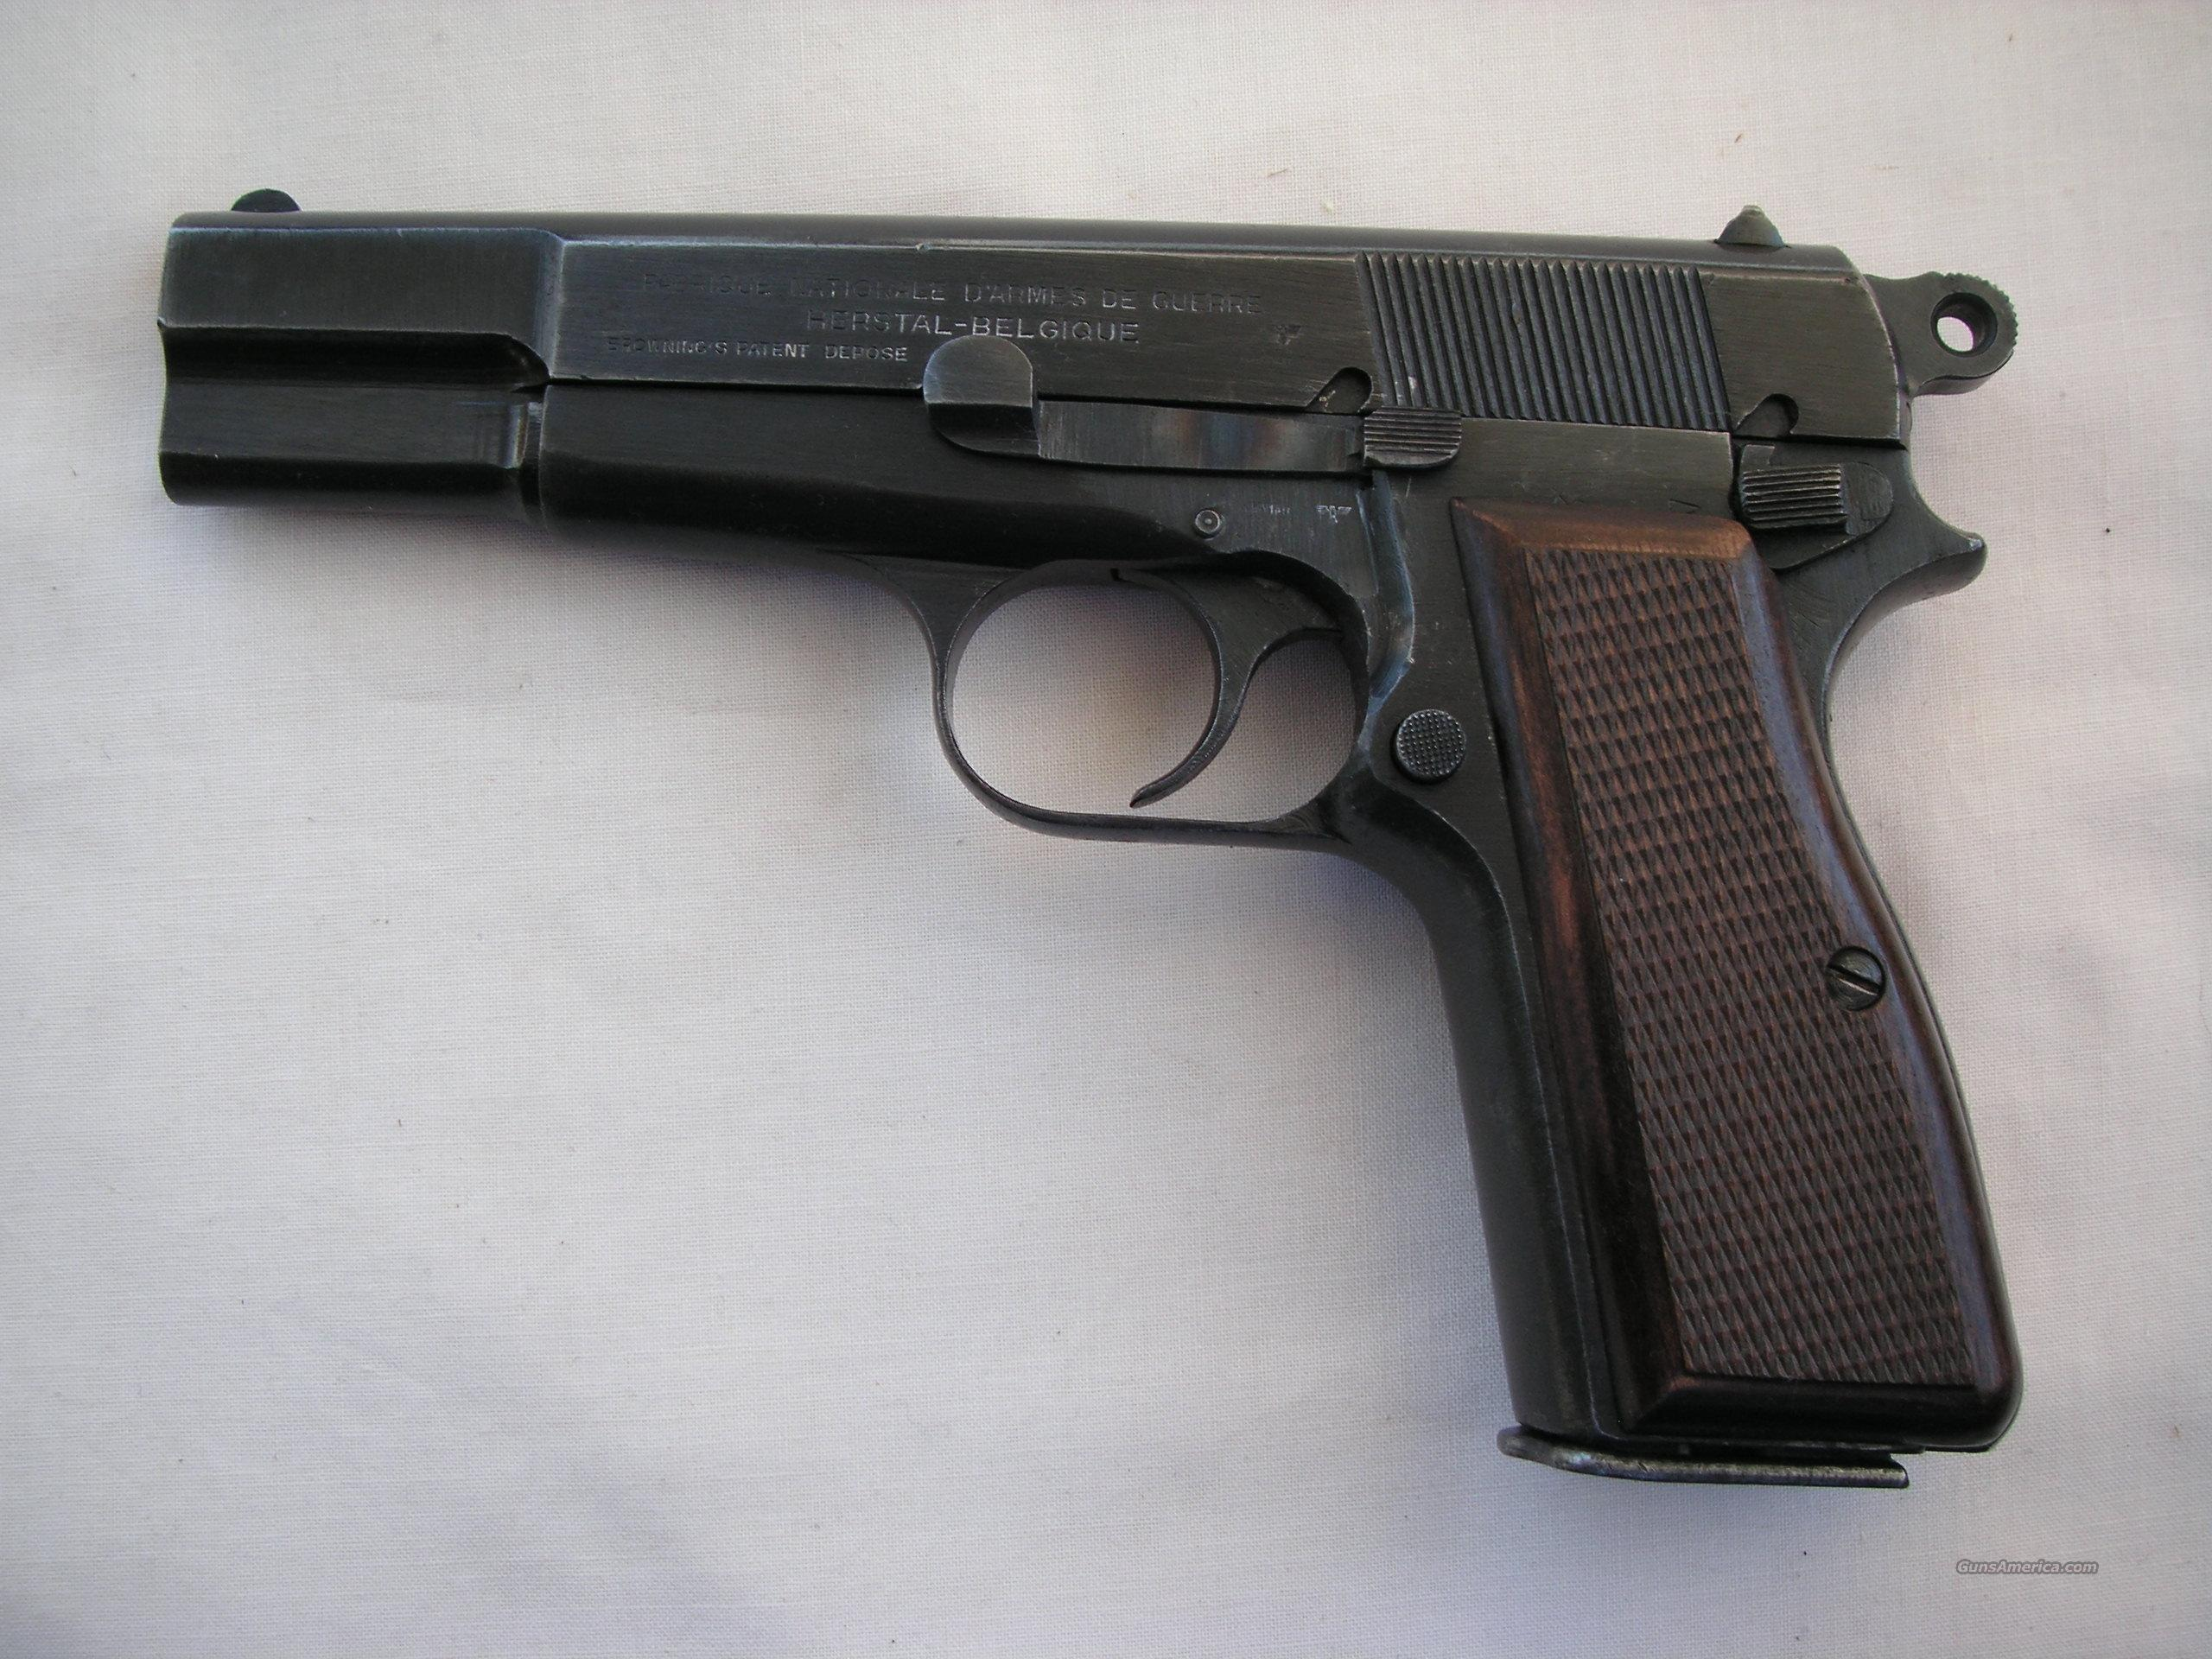 WW2 Nazi time HP Browning cal. 9mm  Guns > Pistols > Browning Pistols > Hi Power